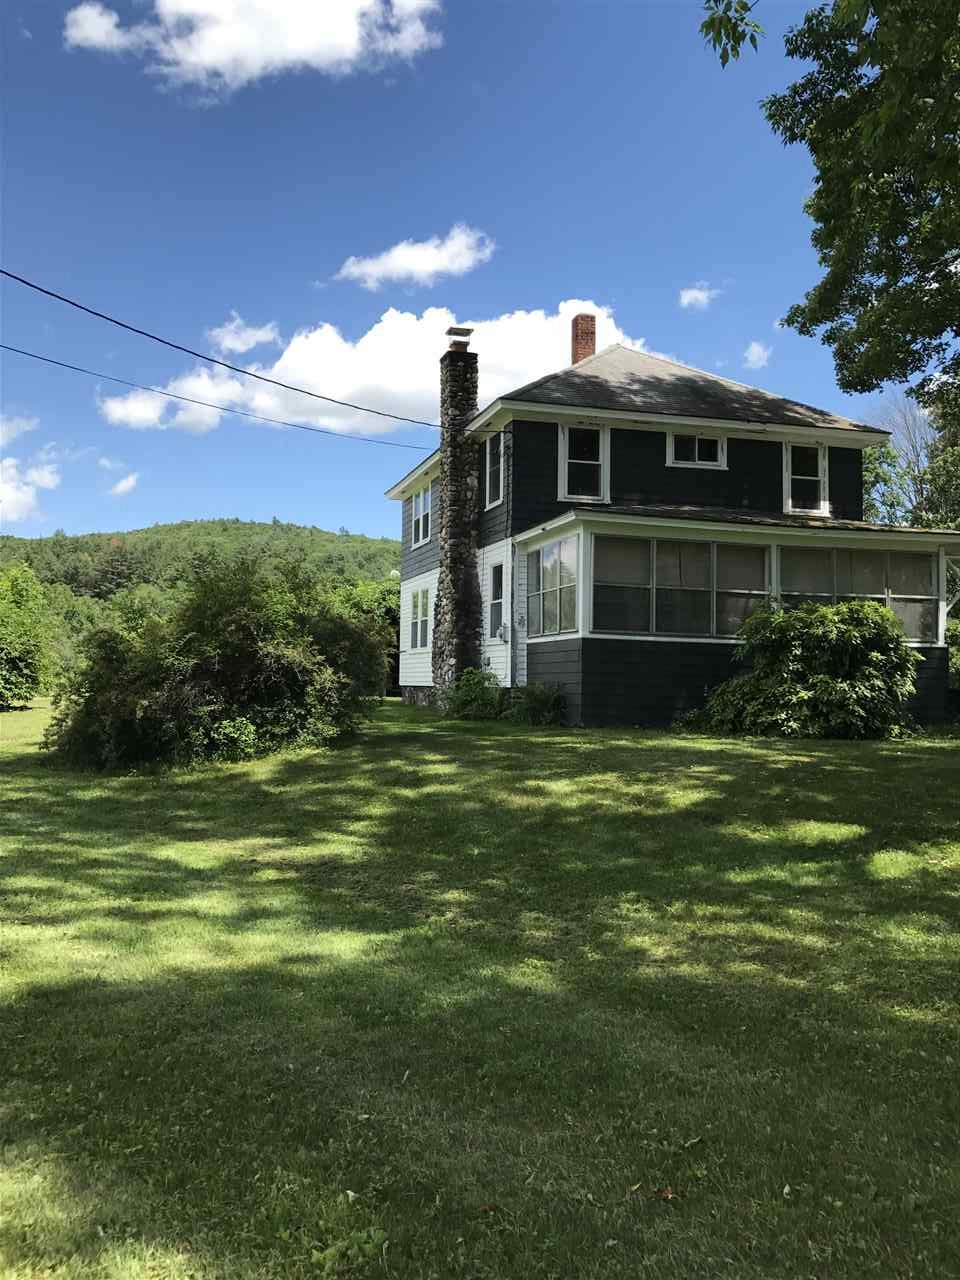 image of Claremont NH Home | sq.ft. 1986